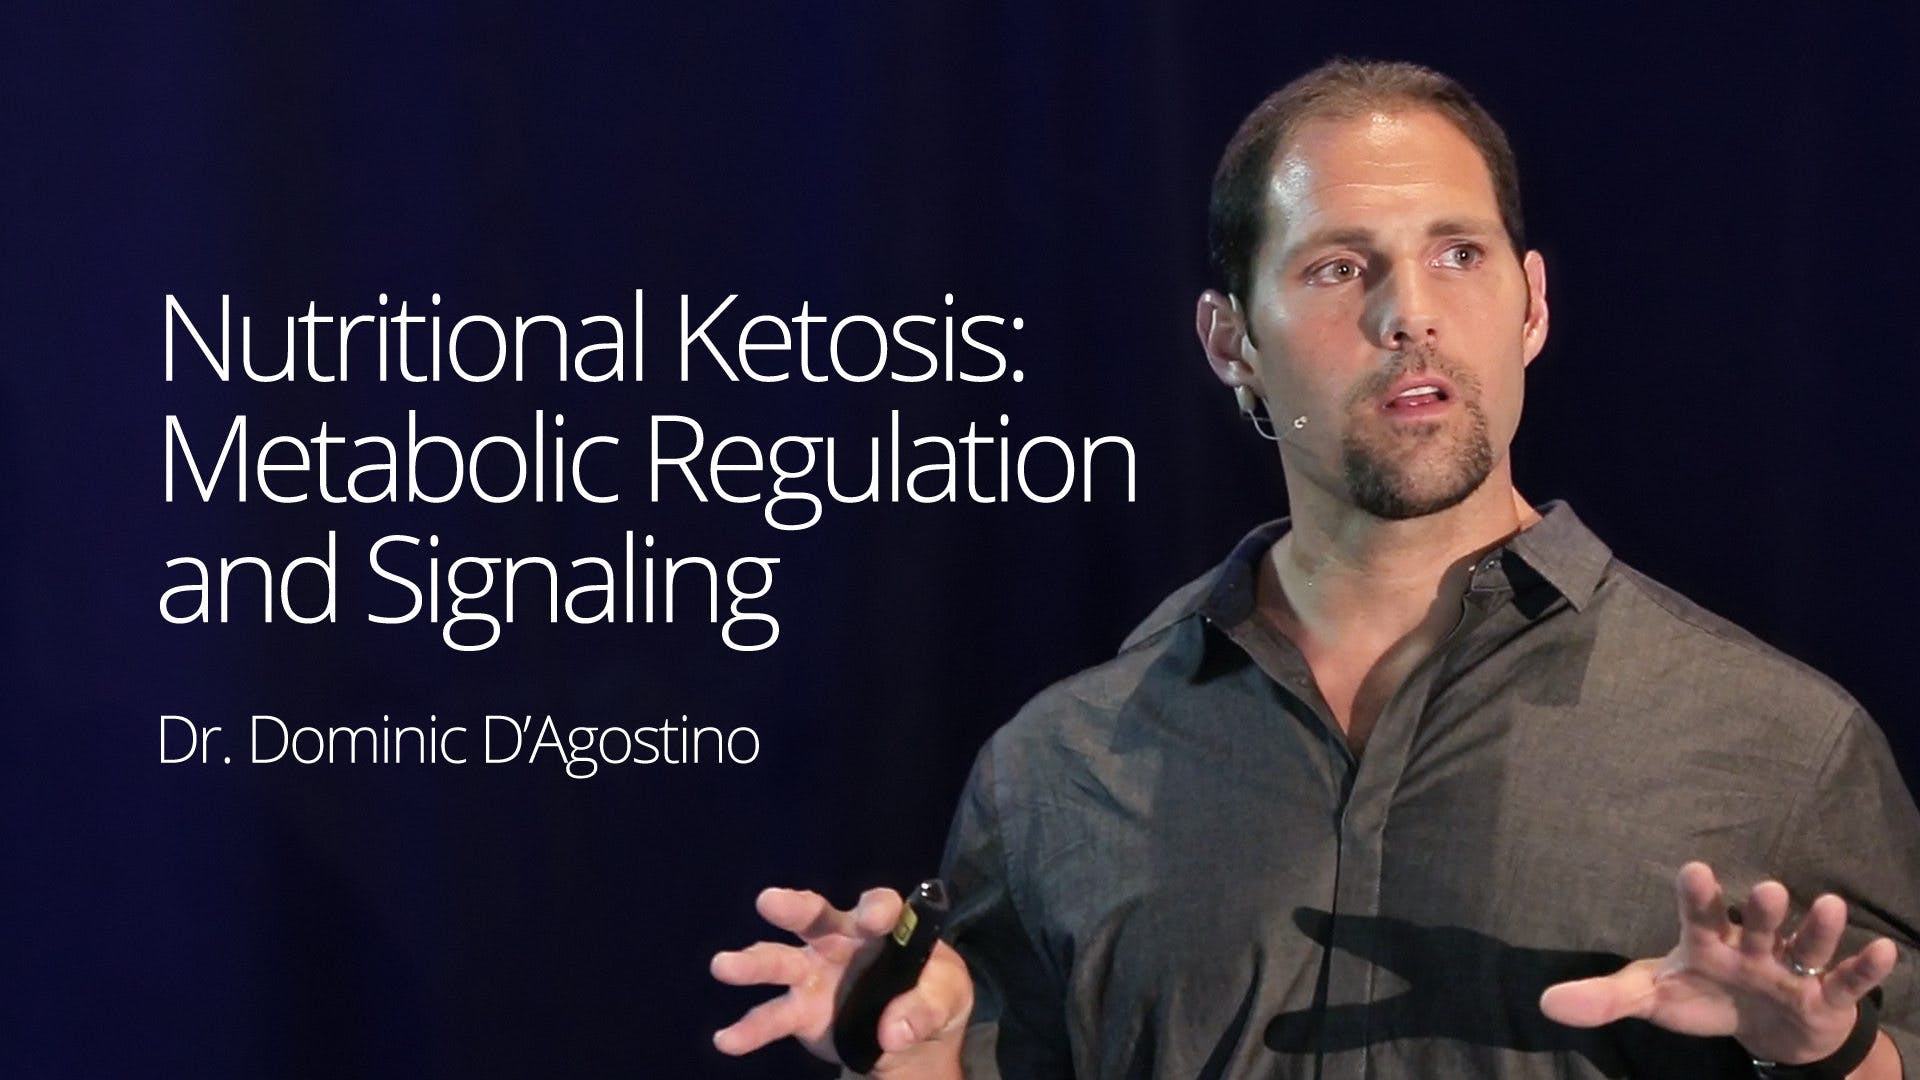 Nutritional ketosis: metabolic regulation and signaling